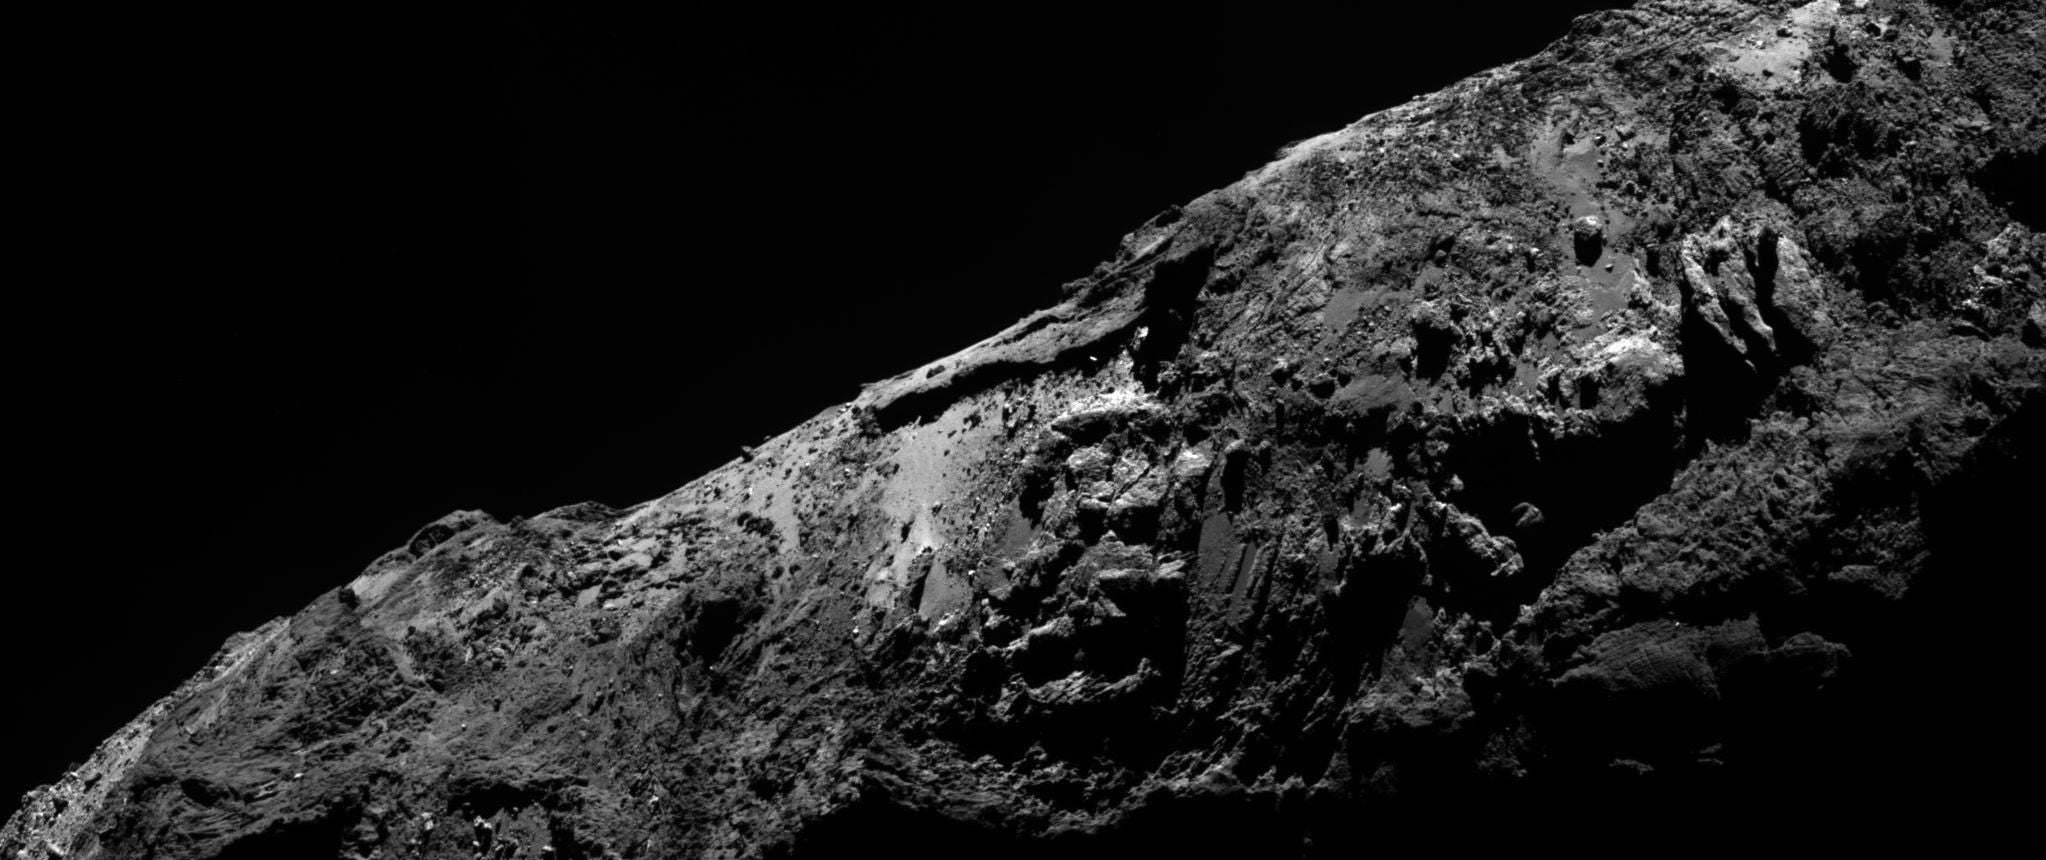 The ESA's Latest Image From Rosetta Shows Off A Rugged Surface